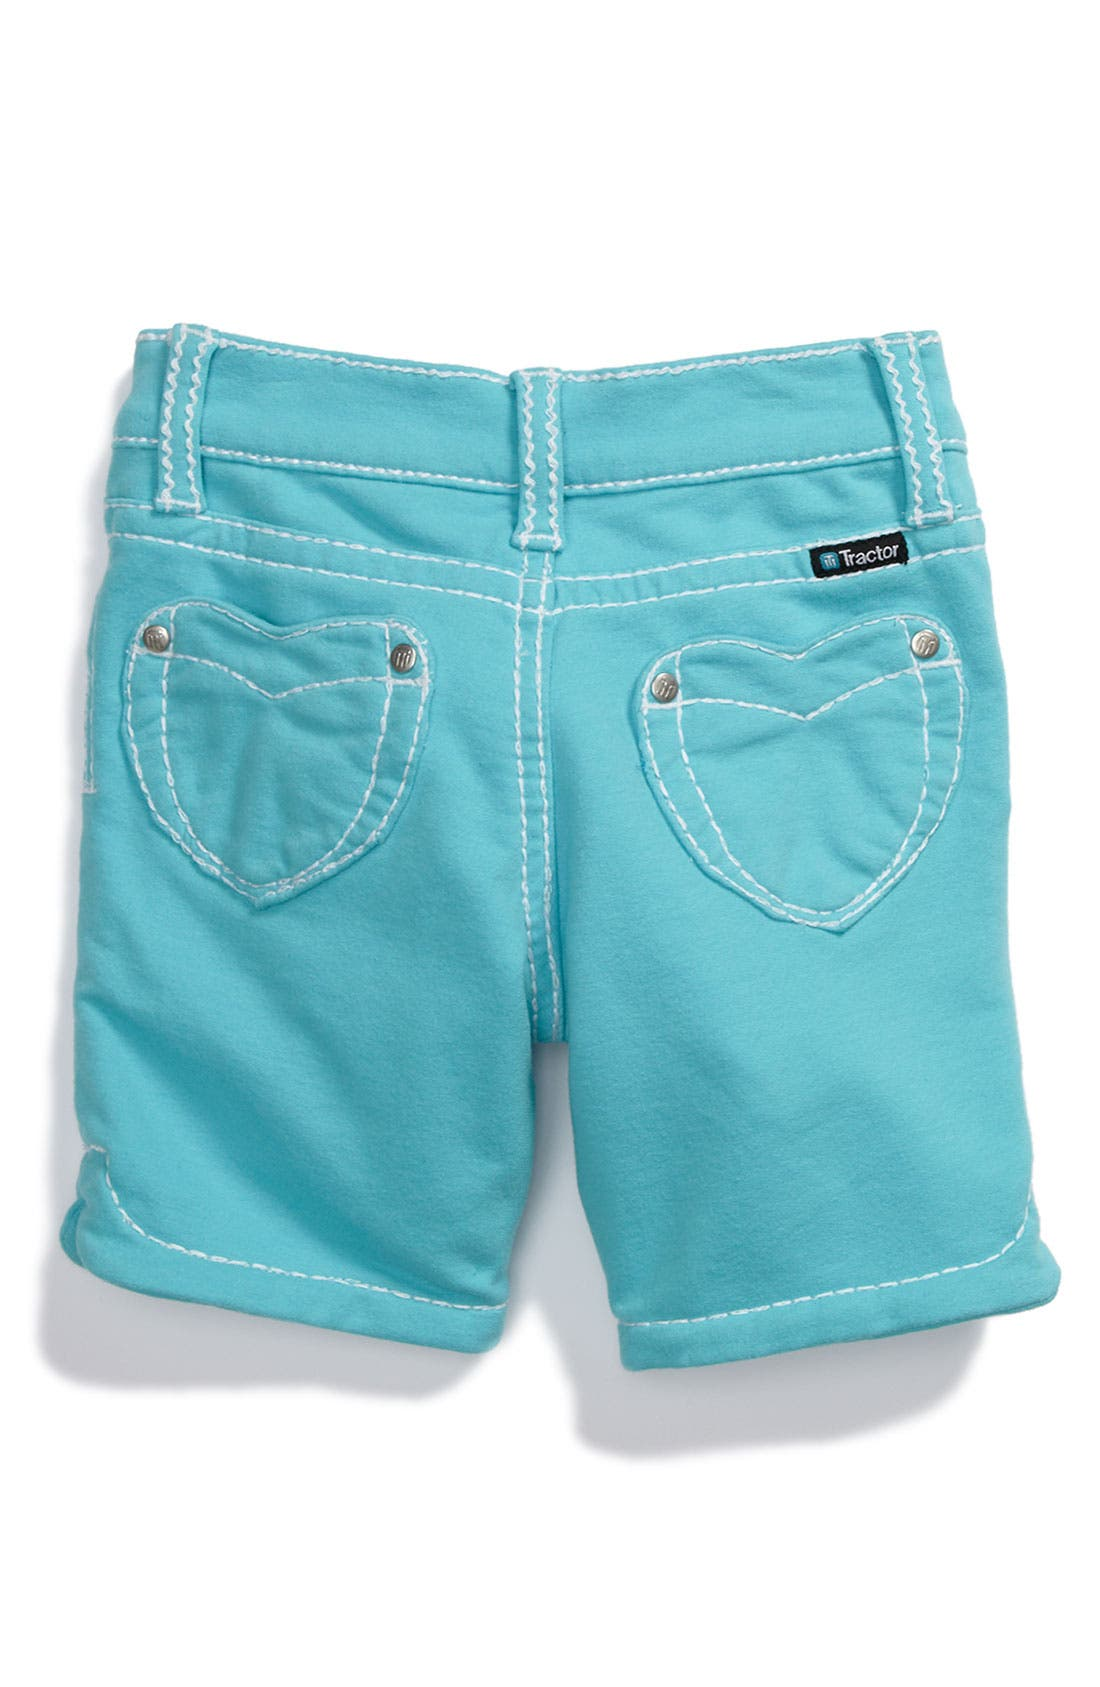 Main Image - Tractr 'Heart Pocket' French Terry Bermuda Shorts (Little Girls)